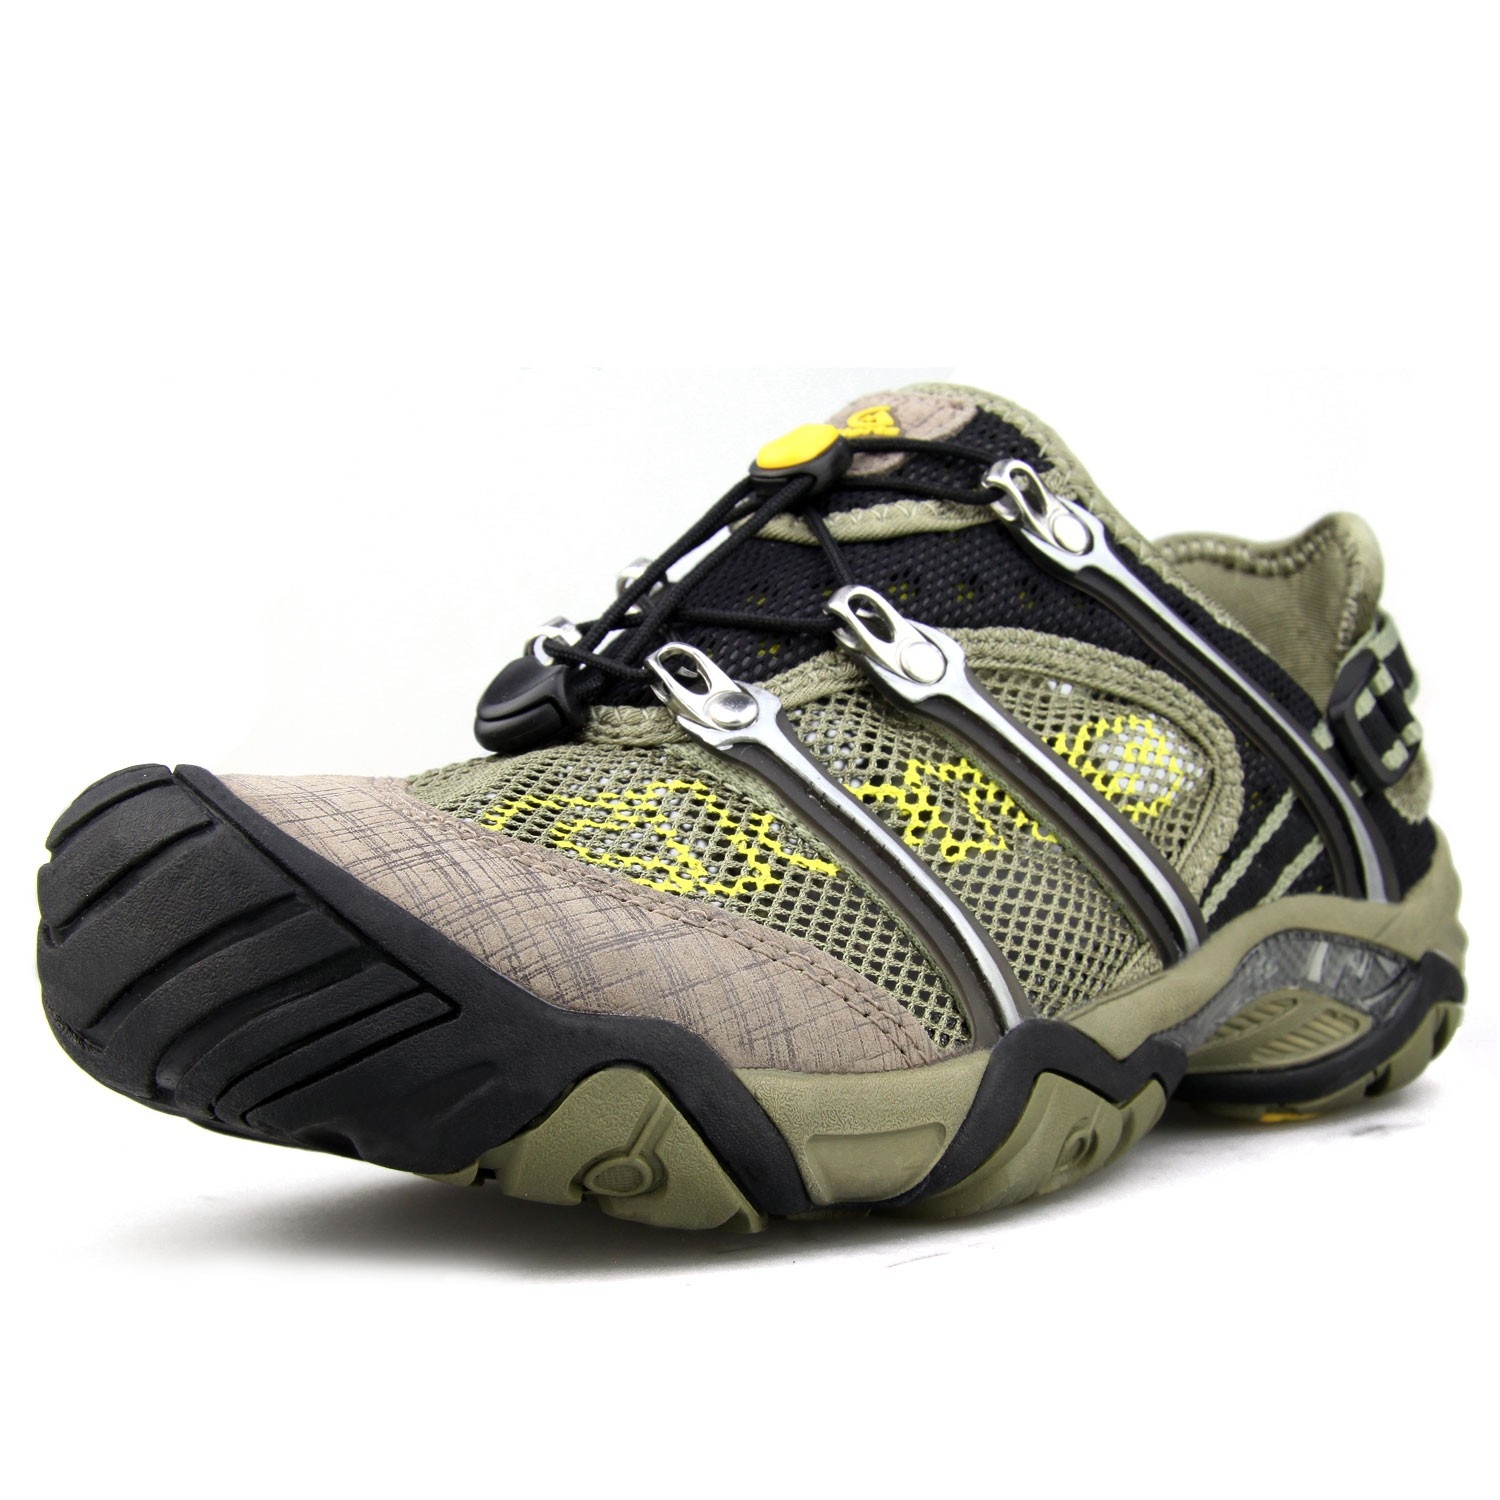 Water Hiking Shoes For Men Manufacturers, Water Hiking Shoes For Men Factory, Supply Water Hiking Shoes For Men